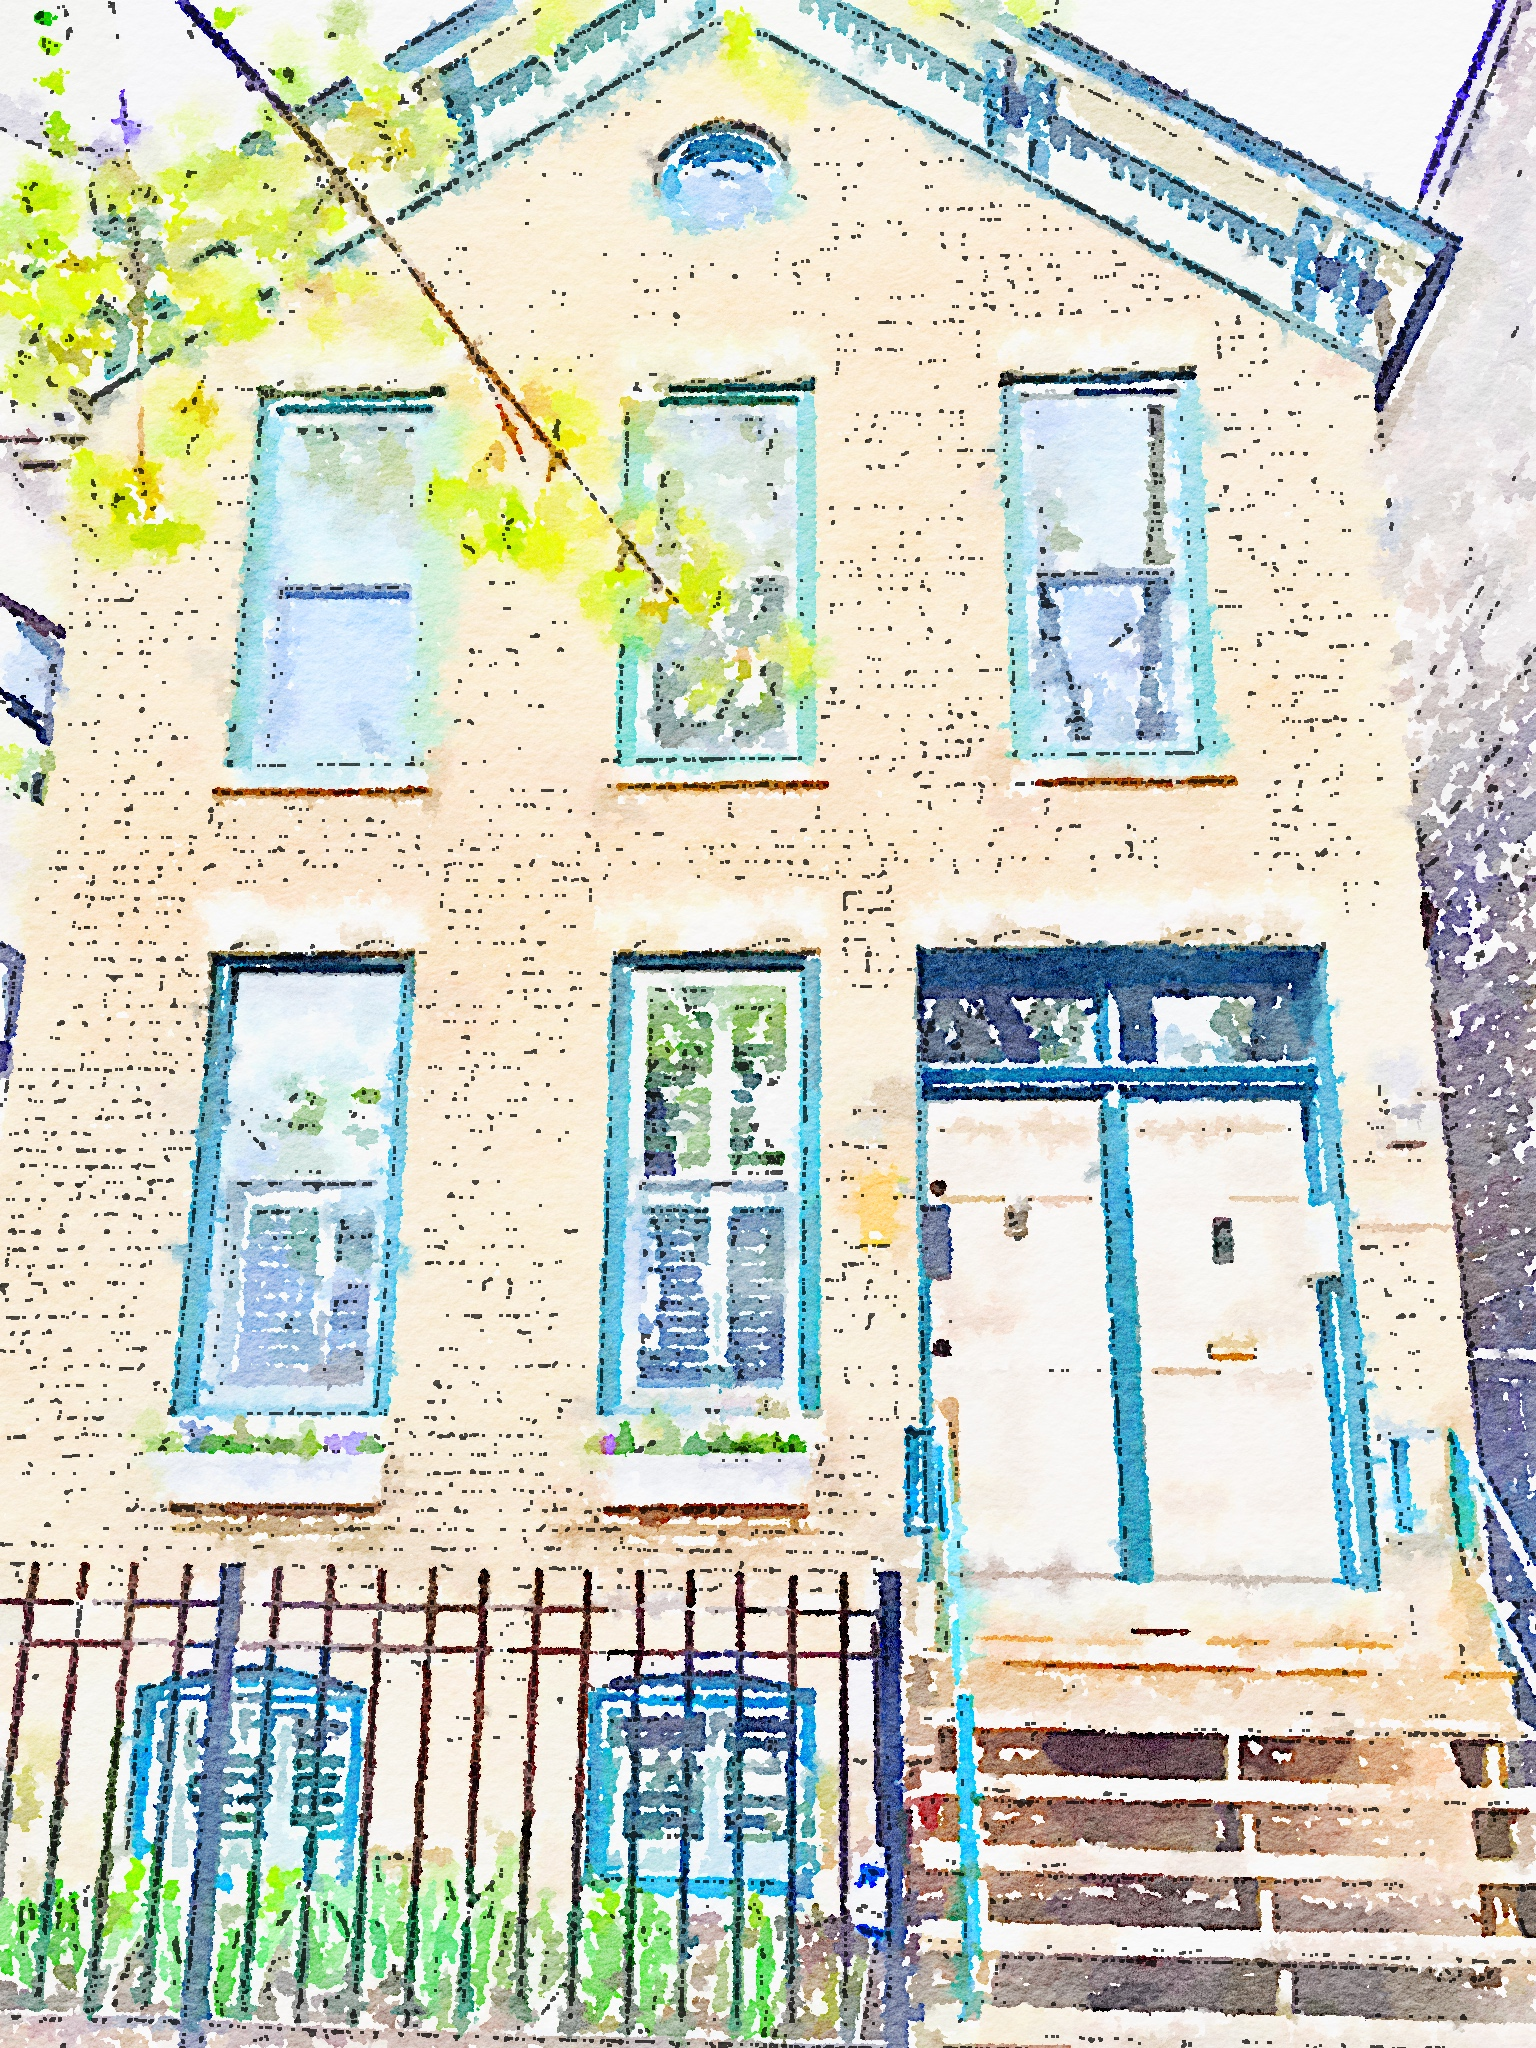 "Waterlogue 1.1.4 (1.1.4) Preset Style = Illustration Format = 10"" (Giant) Format Margin = None Format Border = Straight Drawing = Technical Pen Drawing Weight = Light Drawing Detail = Medium Paint = Natural Paint Lightness = Darker Paint Intensity = More Water = Tap Water Water Edges = Medium Water Bleed = Average Brush = Natural Detail Brush Focus = Everything Brush Spacing = Medium Paper = Watercolor Paper Texture = Medium Paper Shading = Light Options Faces = Enhance Faces"